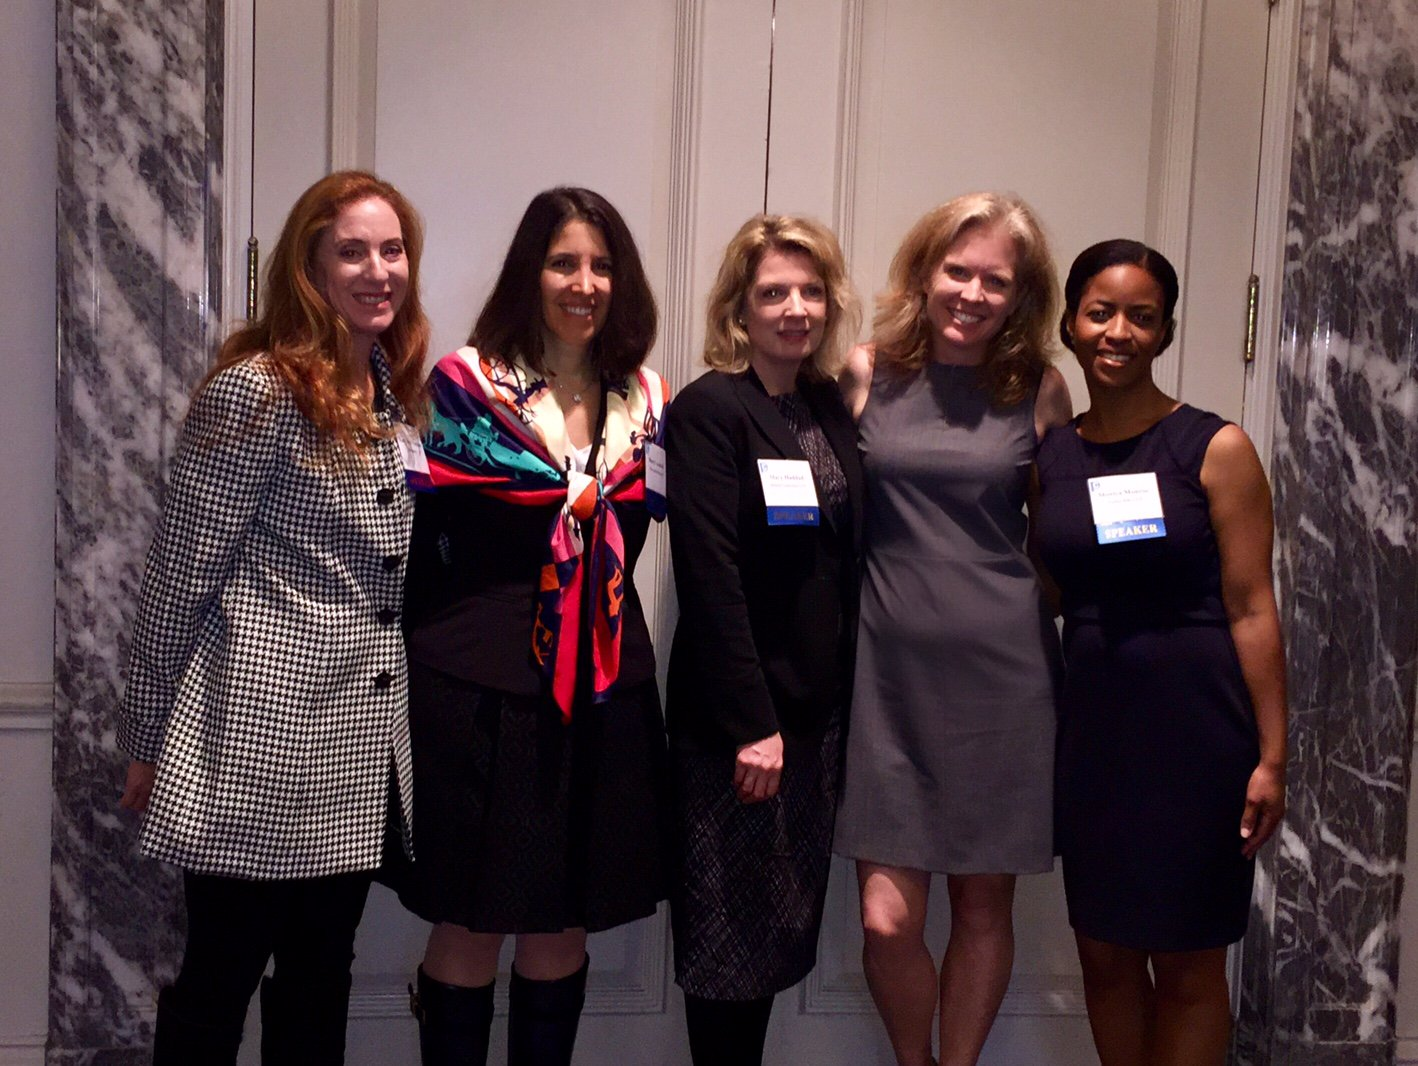 Speakers from left to right: Mary Ann Vorndran, Sheryl L. Axelrod, Mary DePaolo Haddad, Betsy Woudenberg, and Monica Monroe